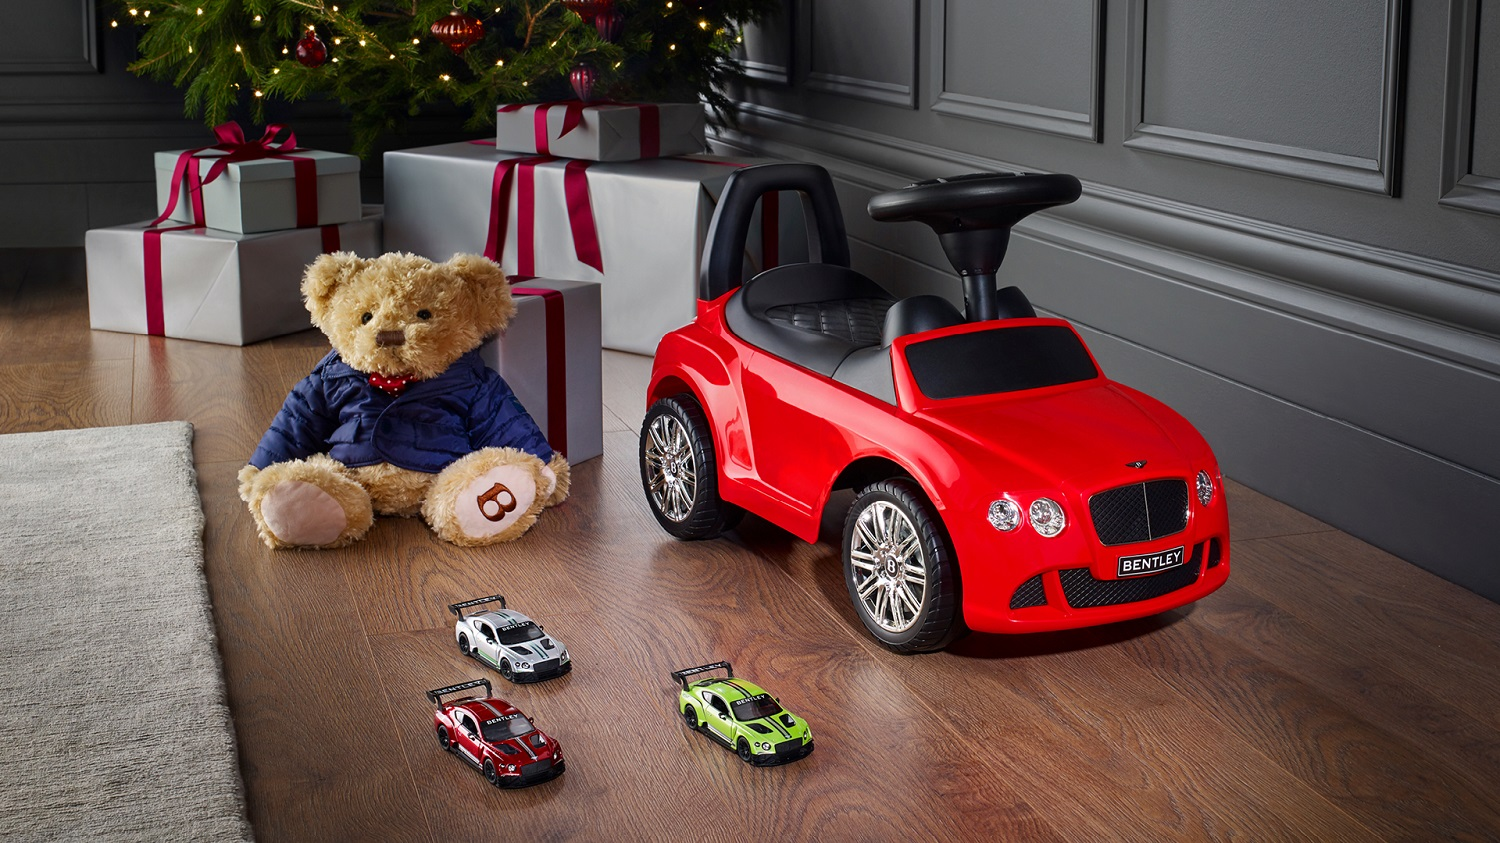 Bentley Collection Gifts To Delight Friends And Loved Ones Of All Ages | For the young (and the young at heart)